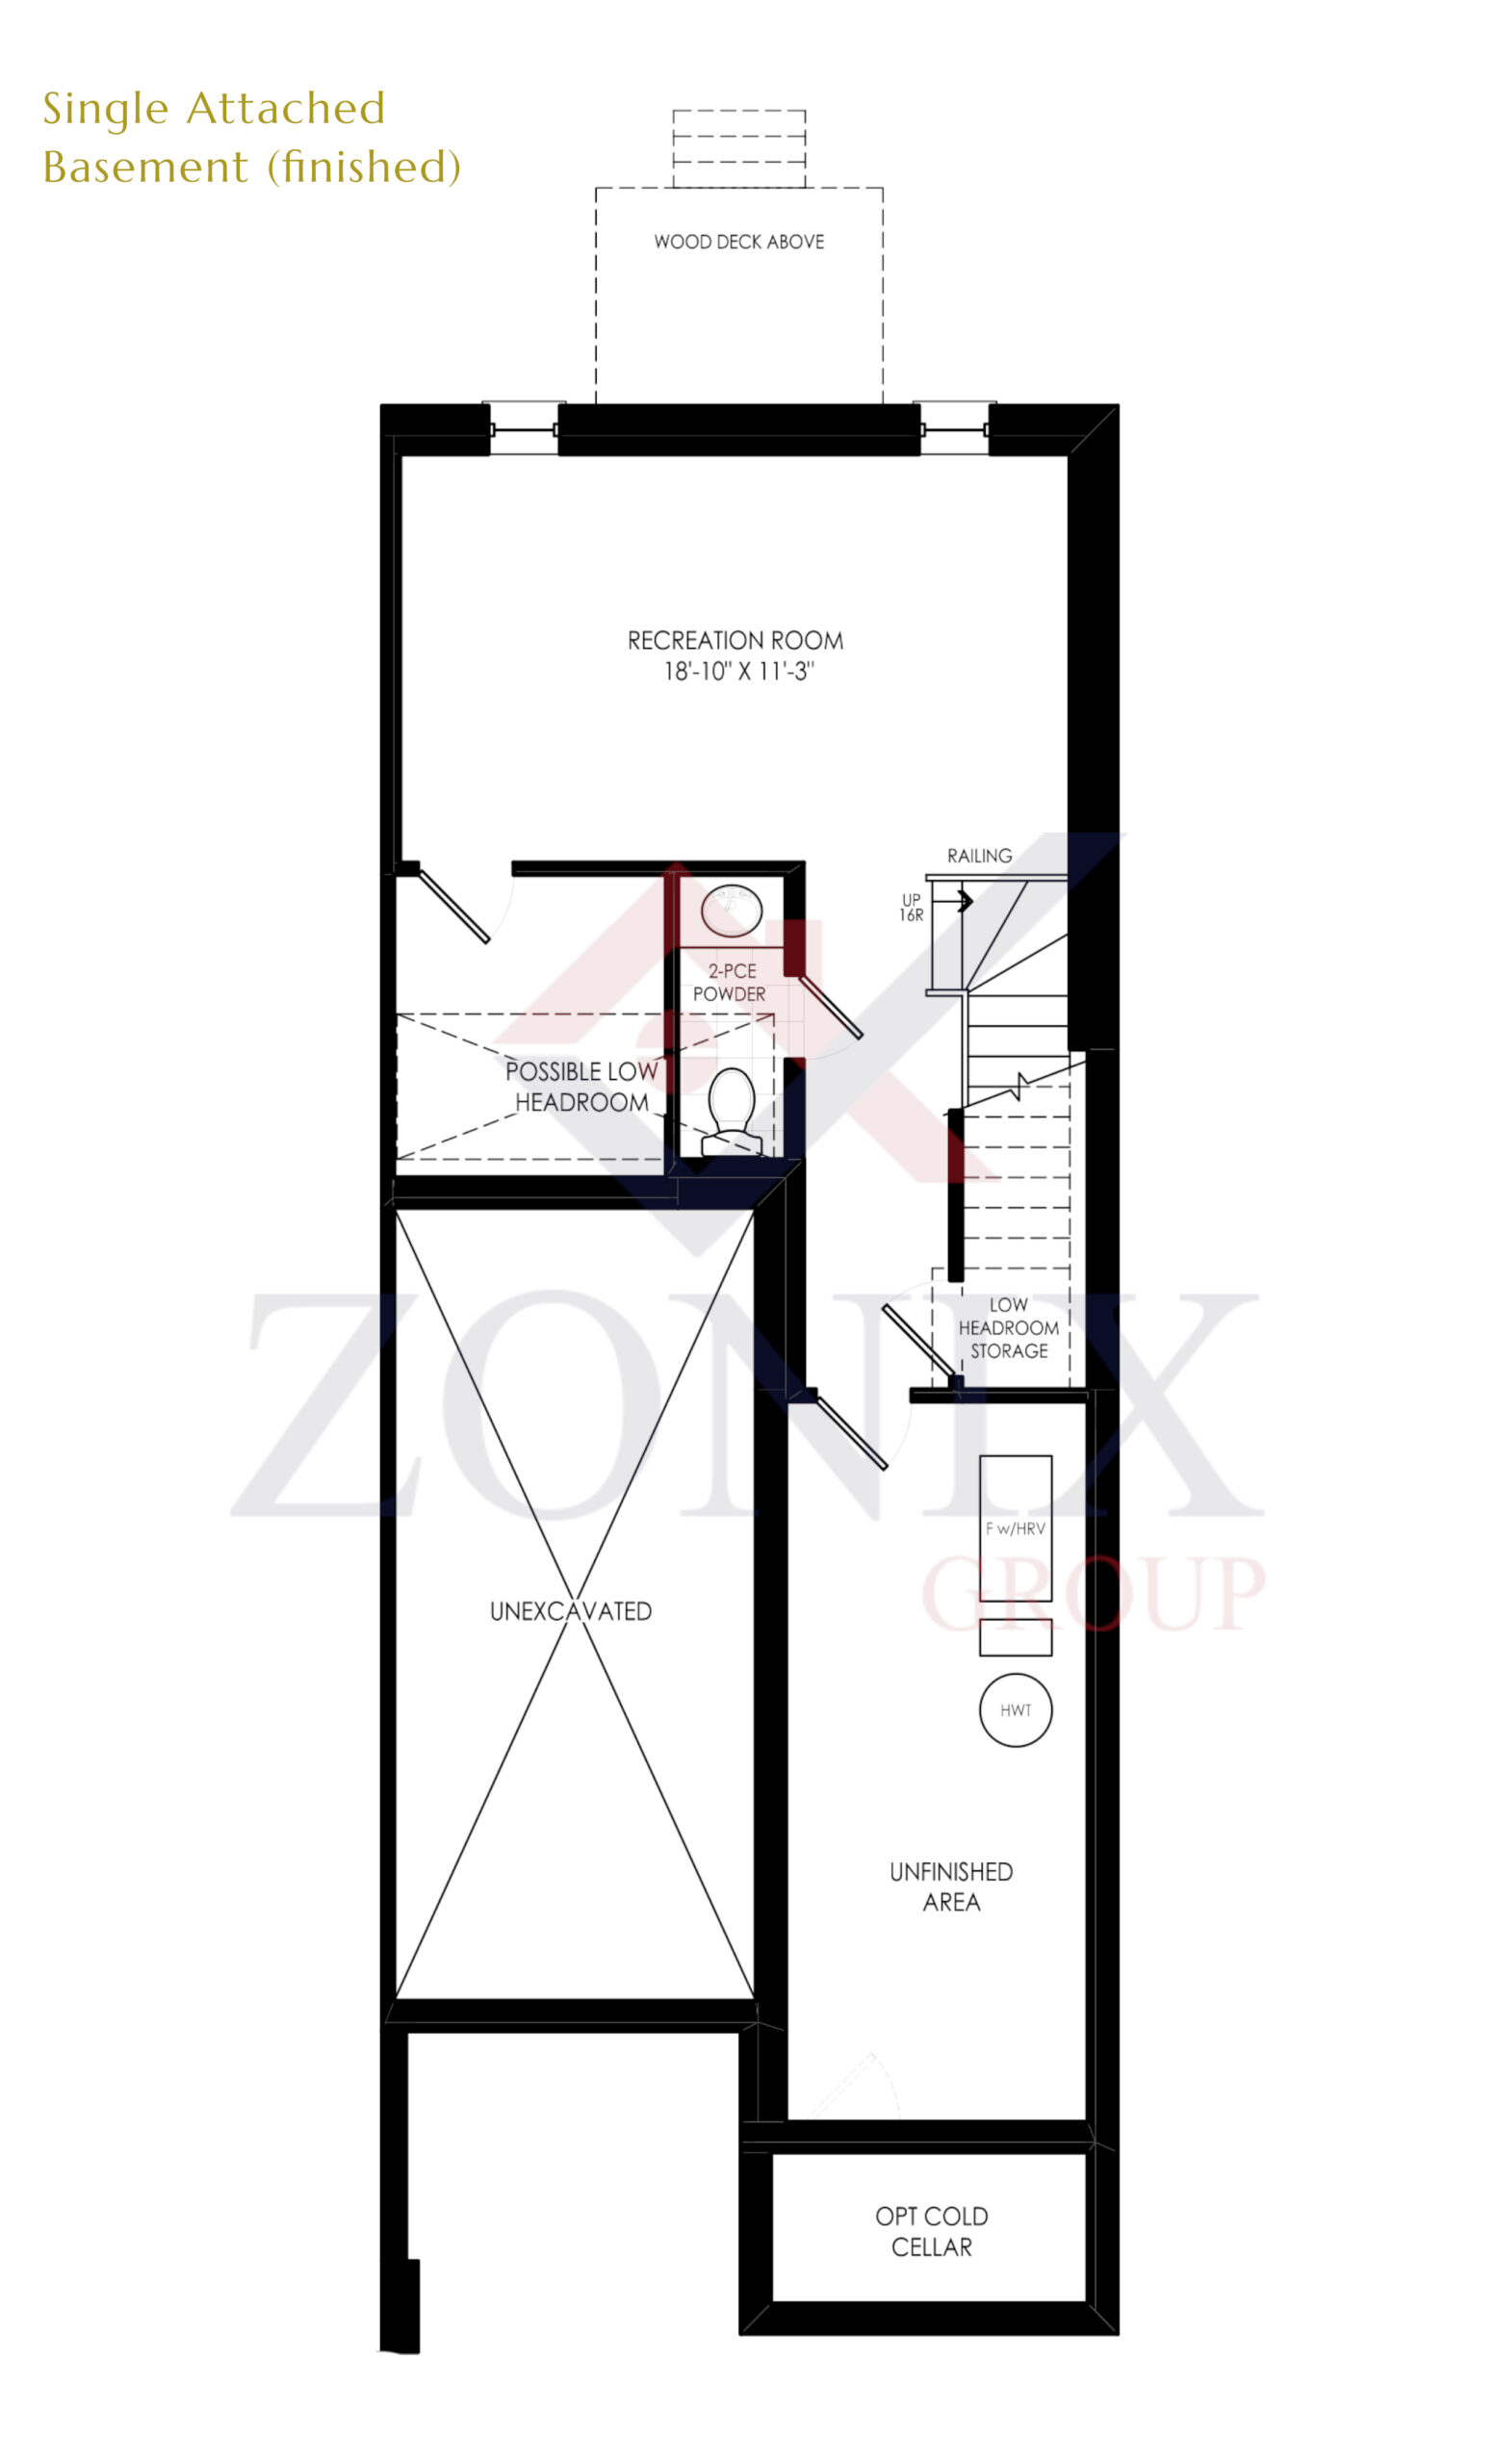 Attached Single Basement (Finished)